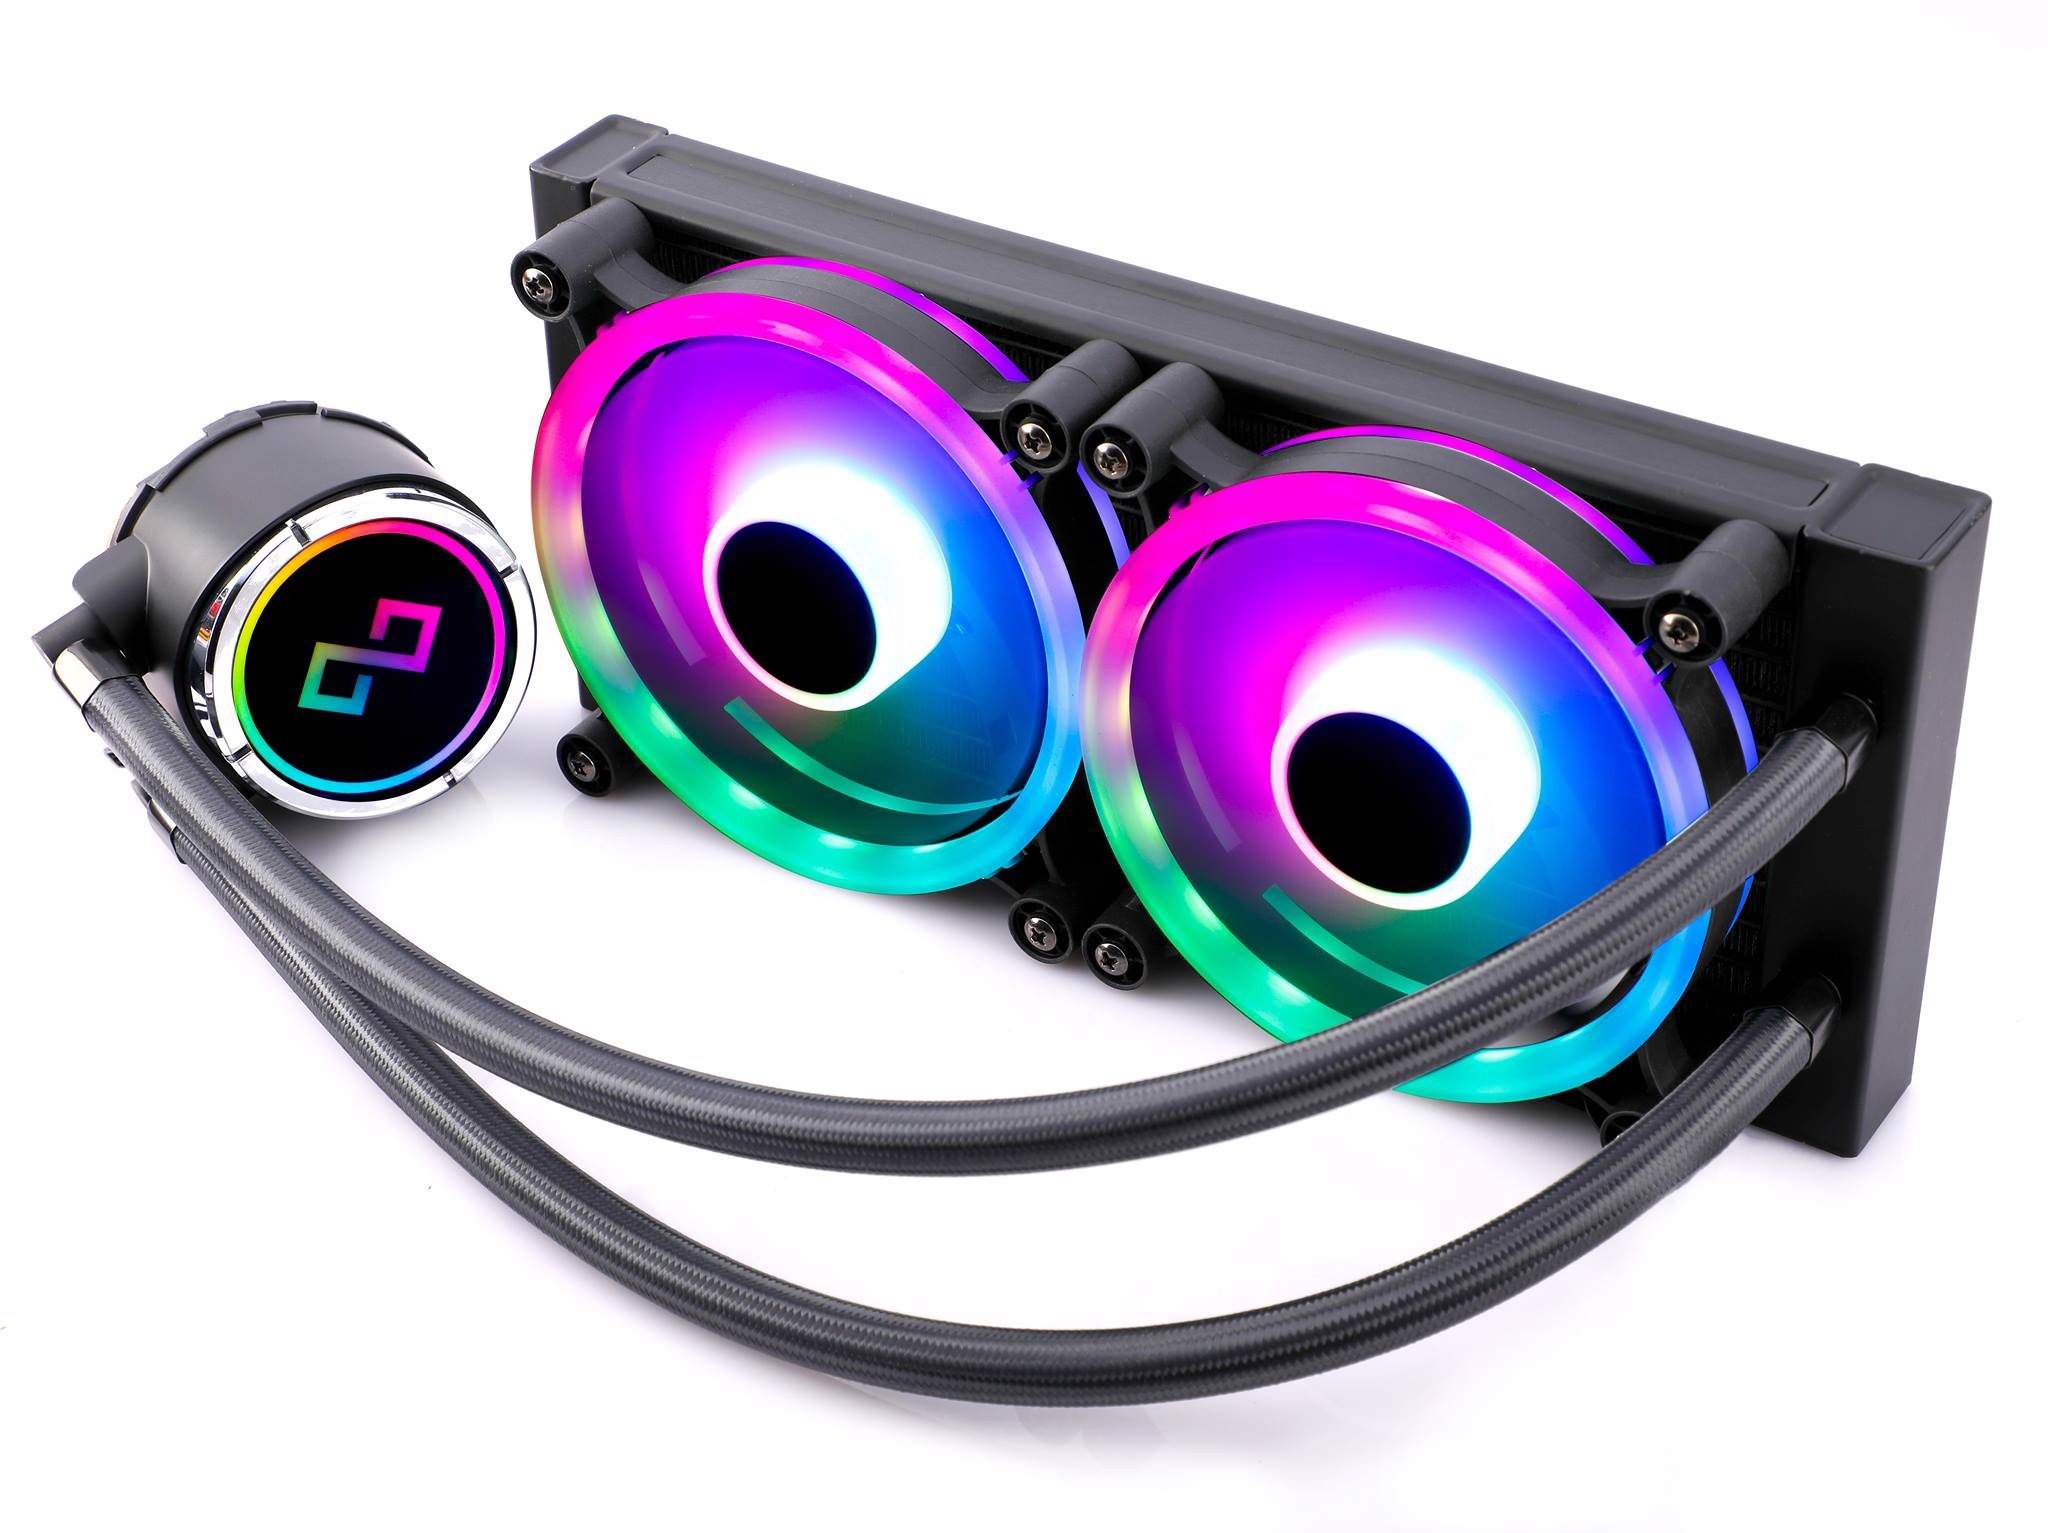 Infinity Dark Wizard Addressable RGB 240mm liquid CPU cooler - 3x Spectrum Pro Edition